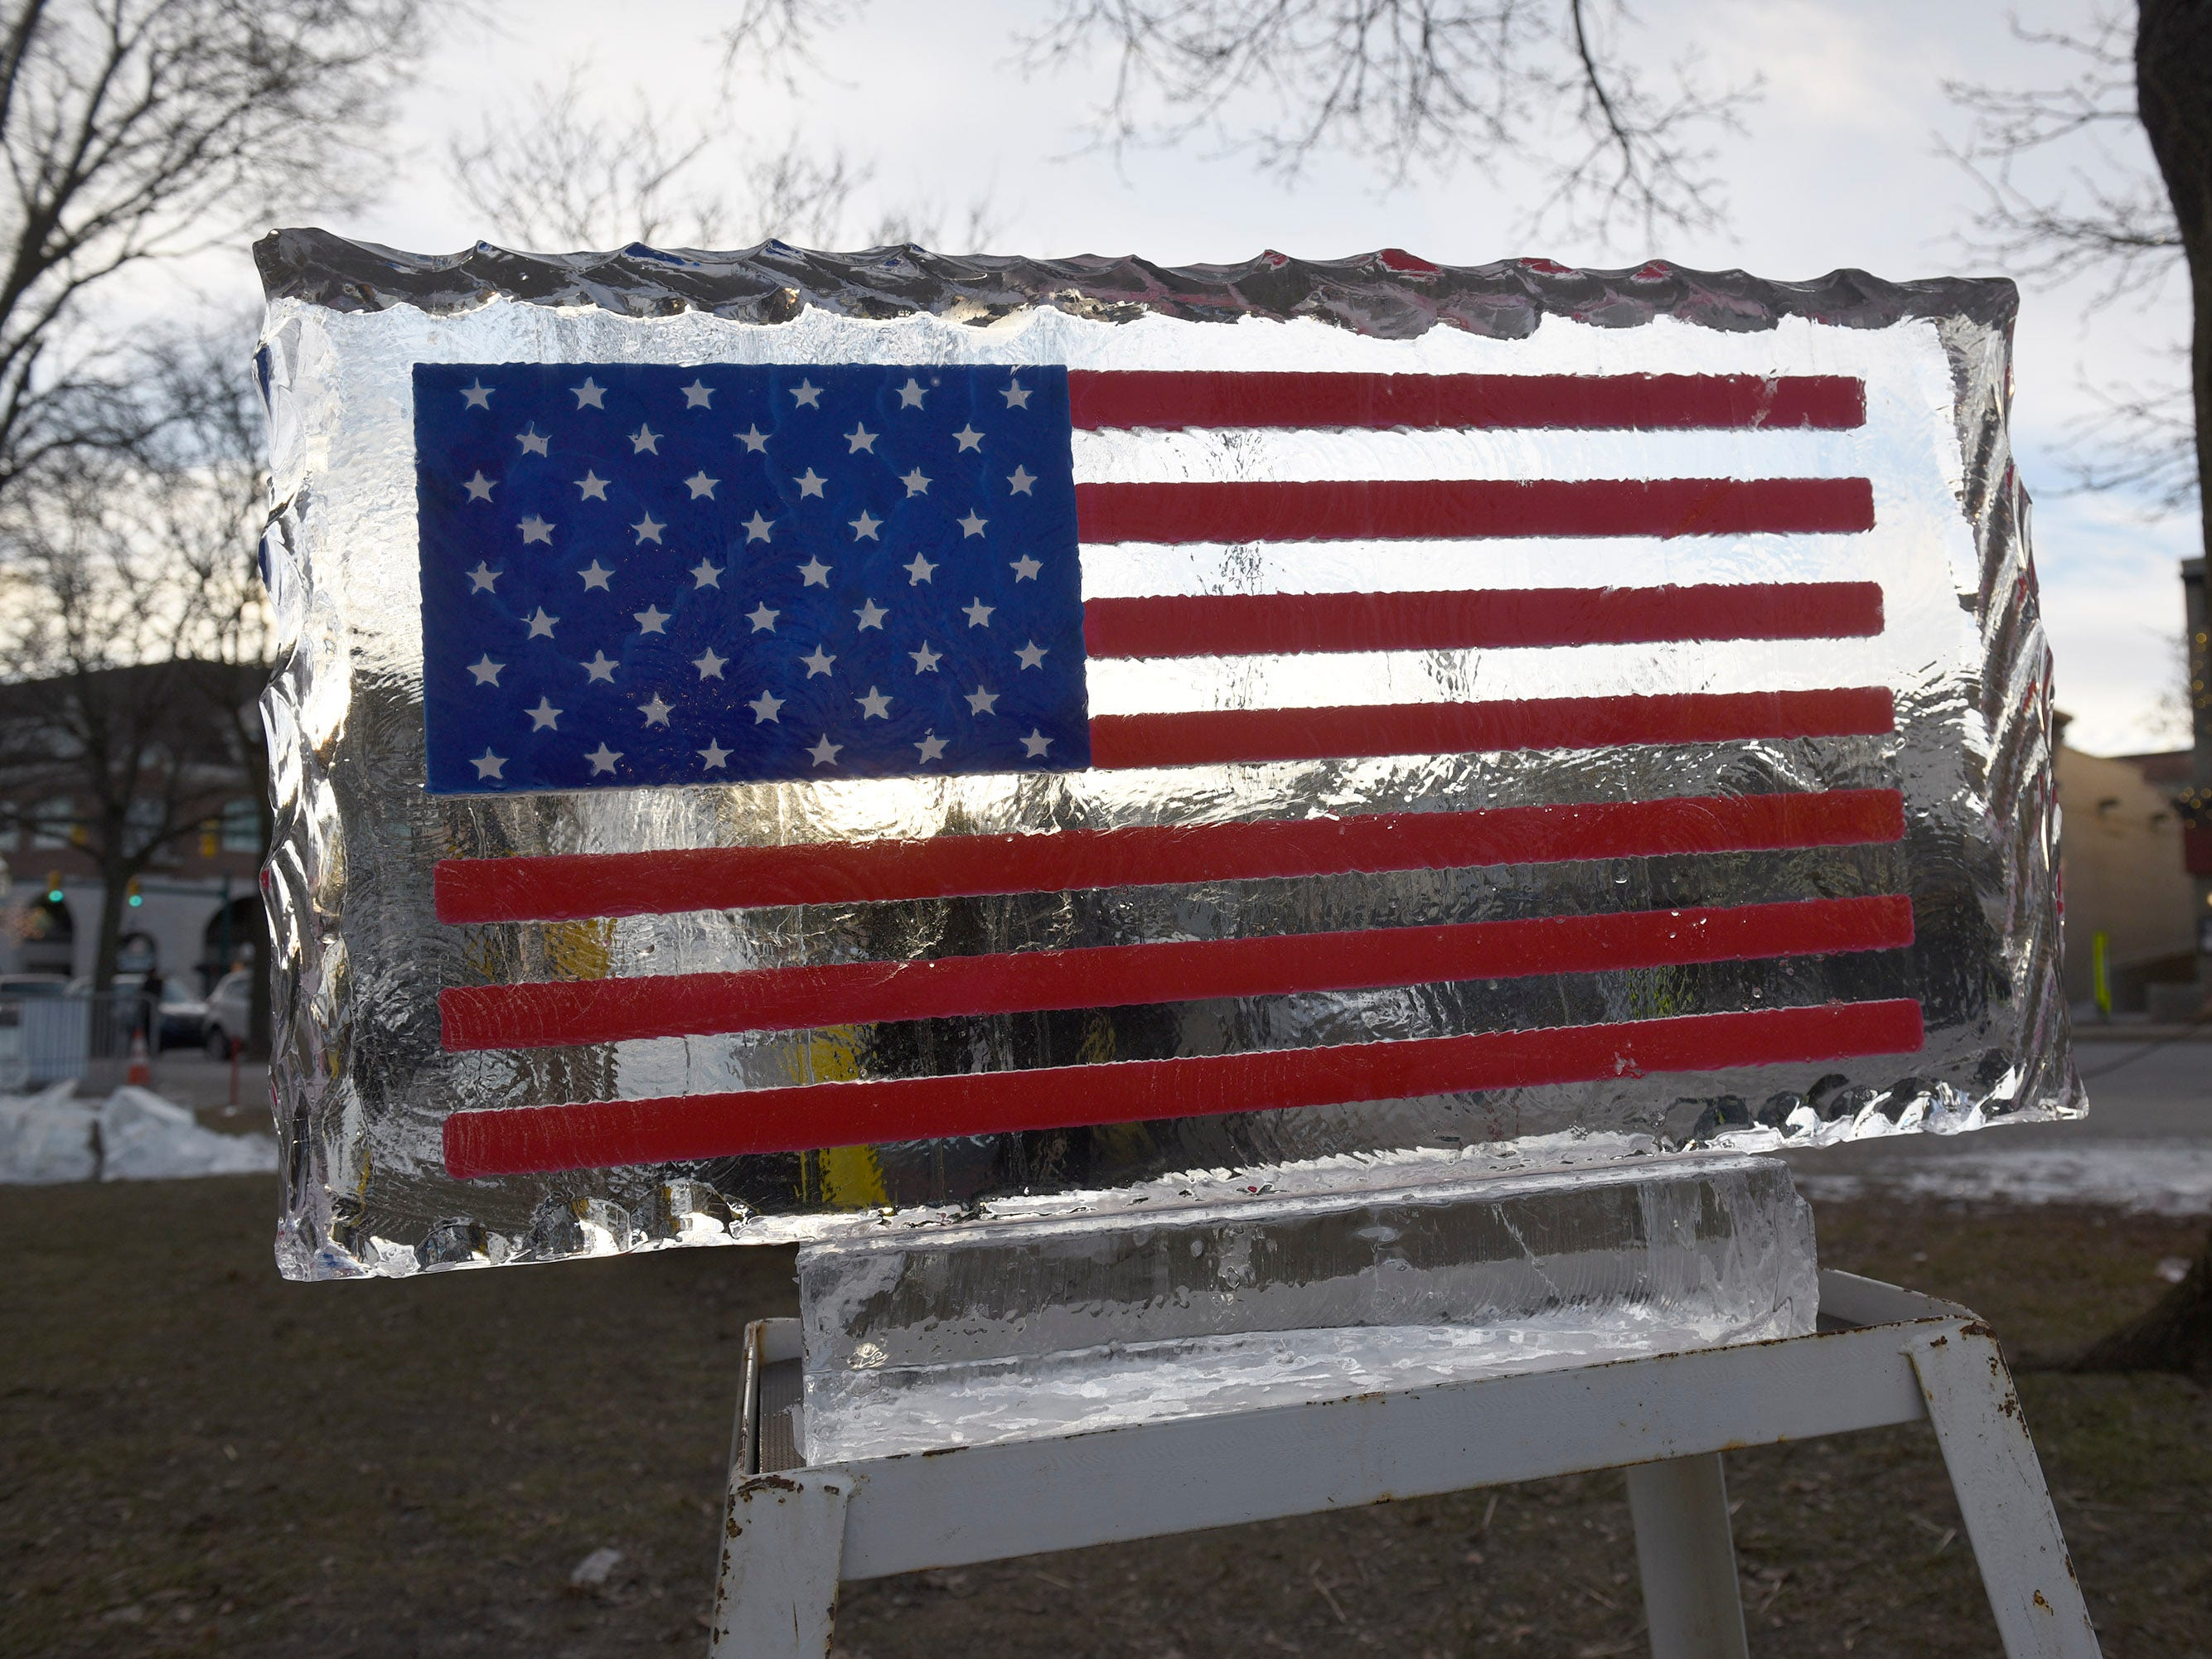 Ice sculptures at the 2019 Plymouth Ice Festival that runs Jan. 11-13.